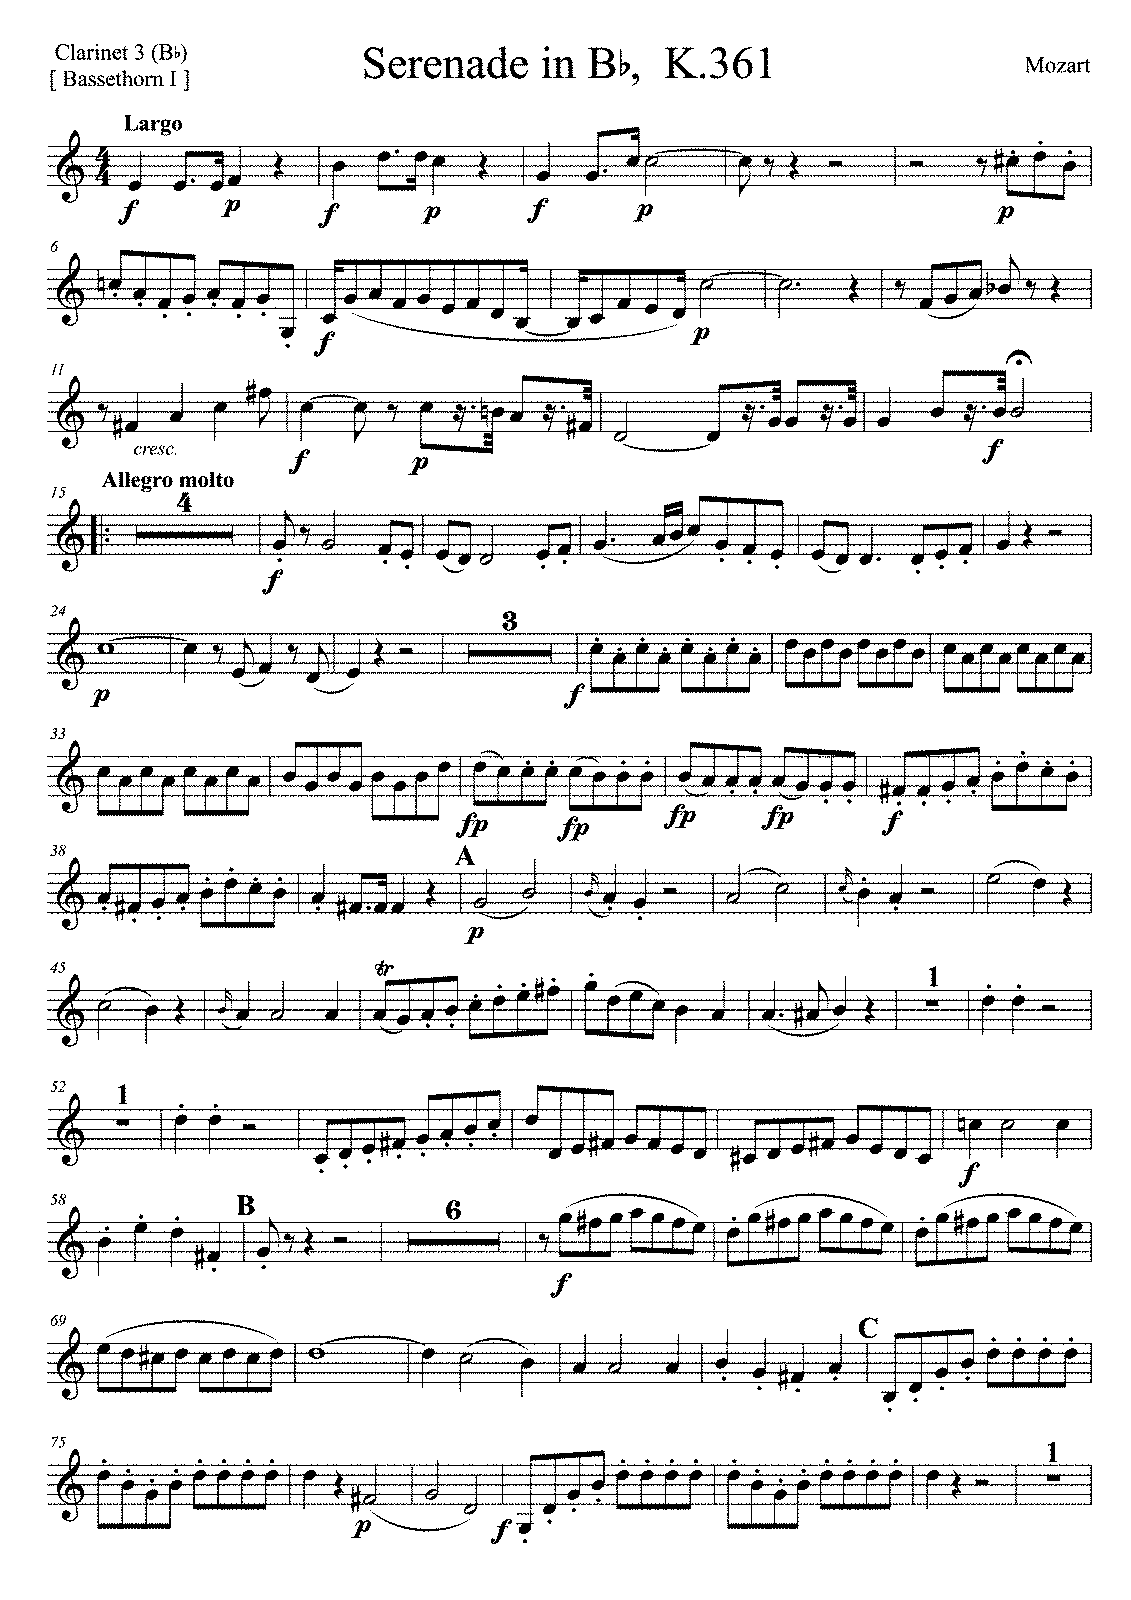 PMLP40431-Mozart Serenade K361 Clarinet alternatives for Bassethorns.pdf